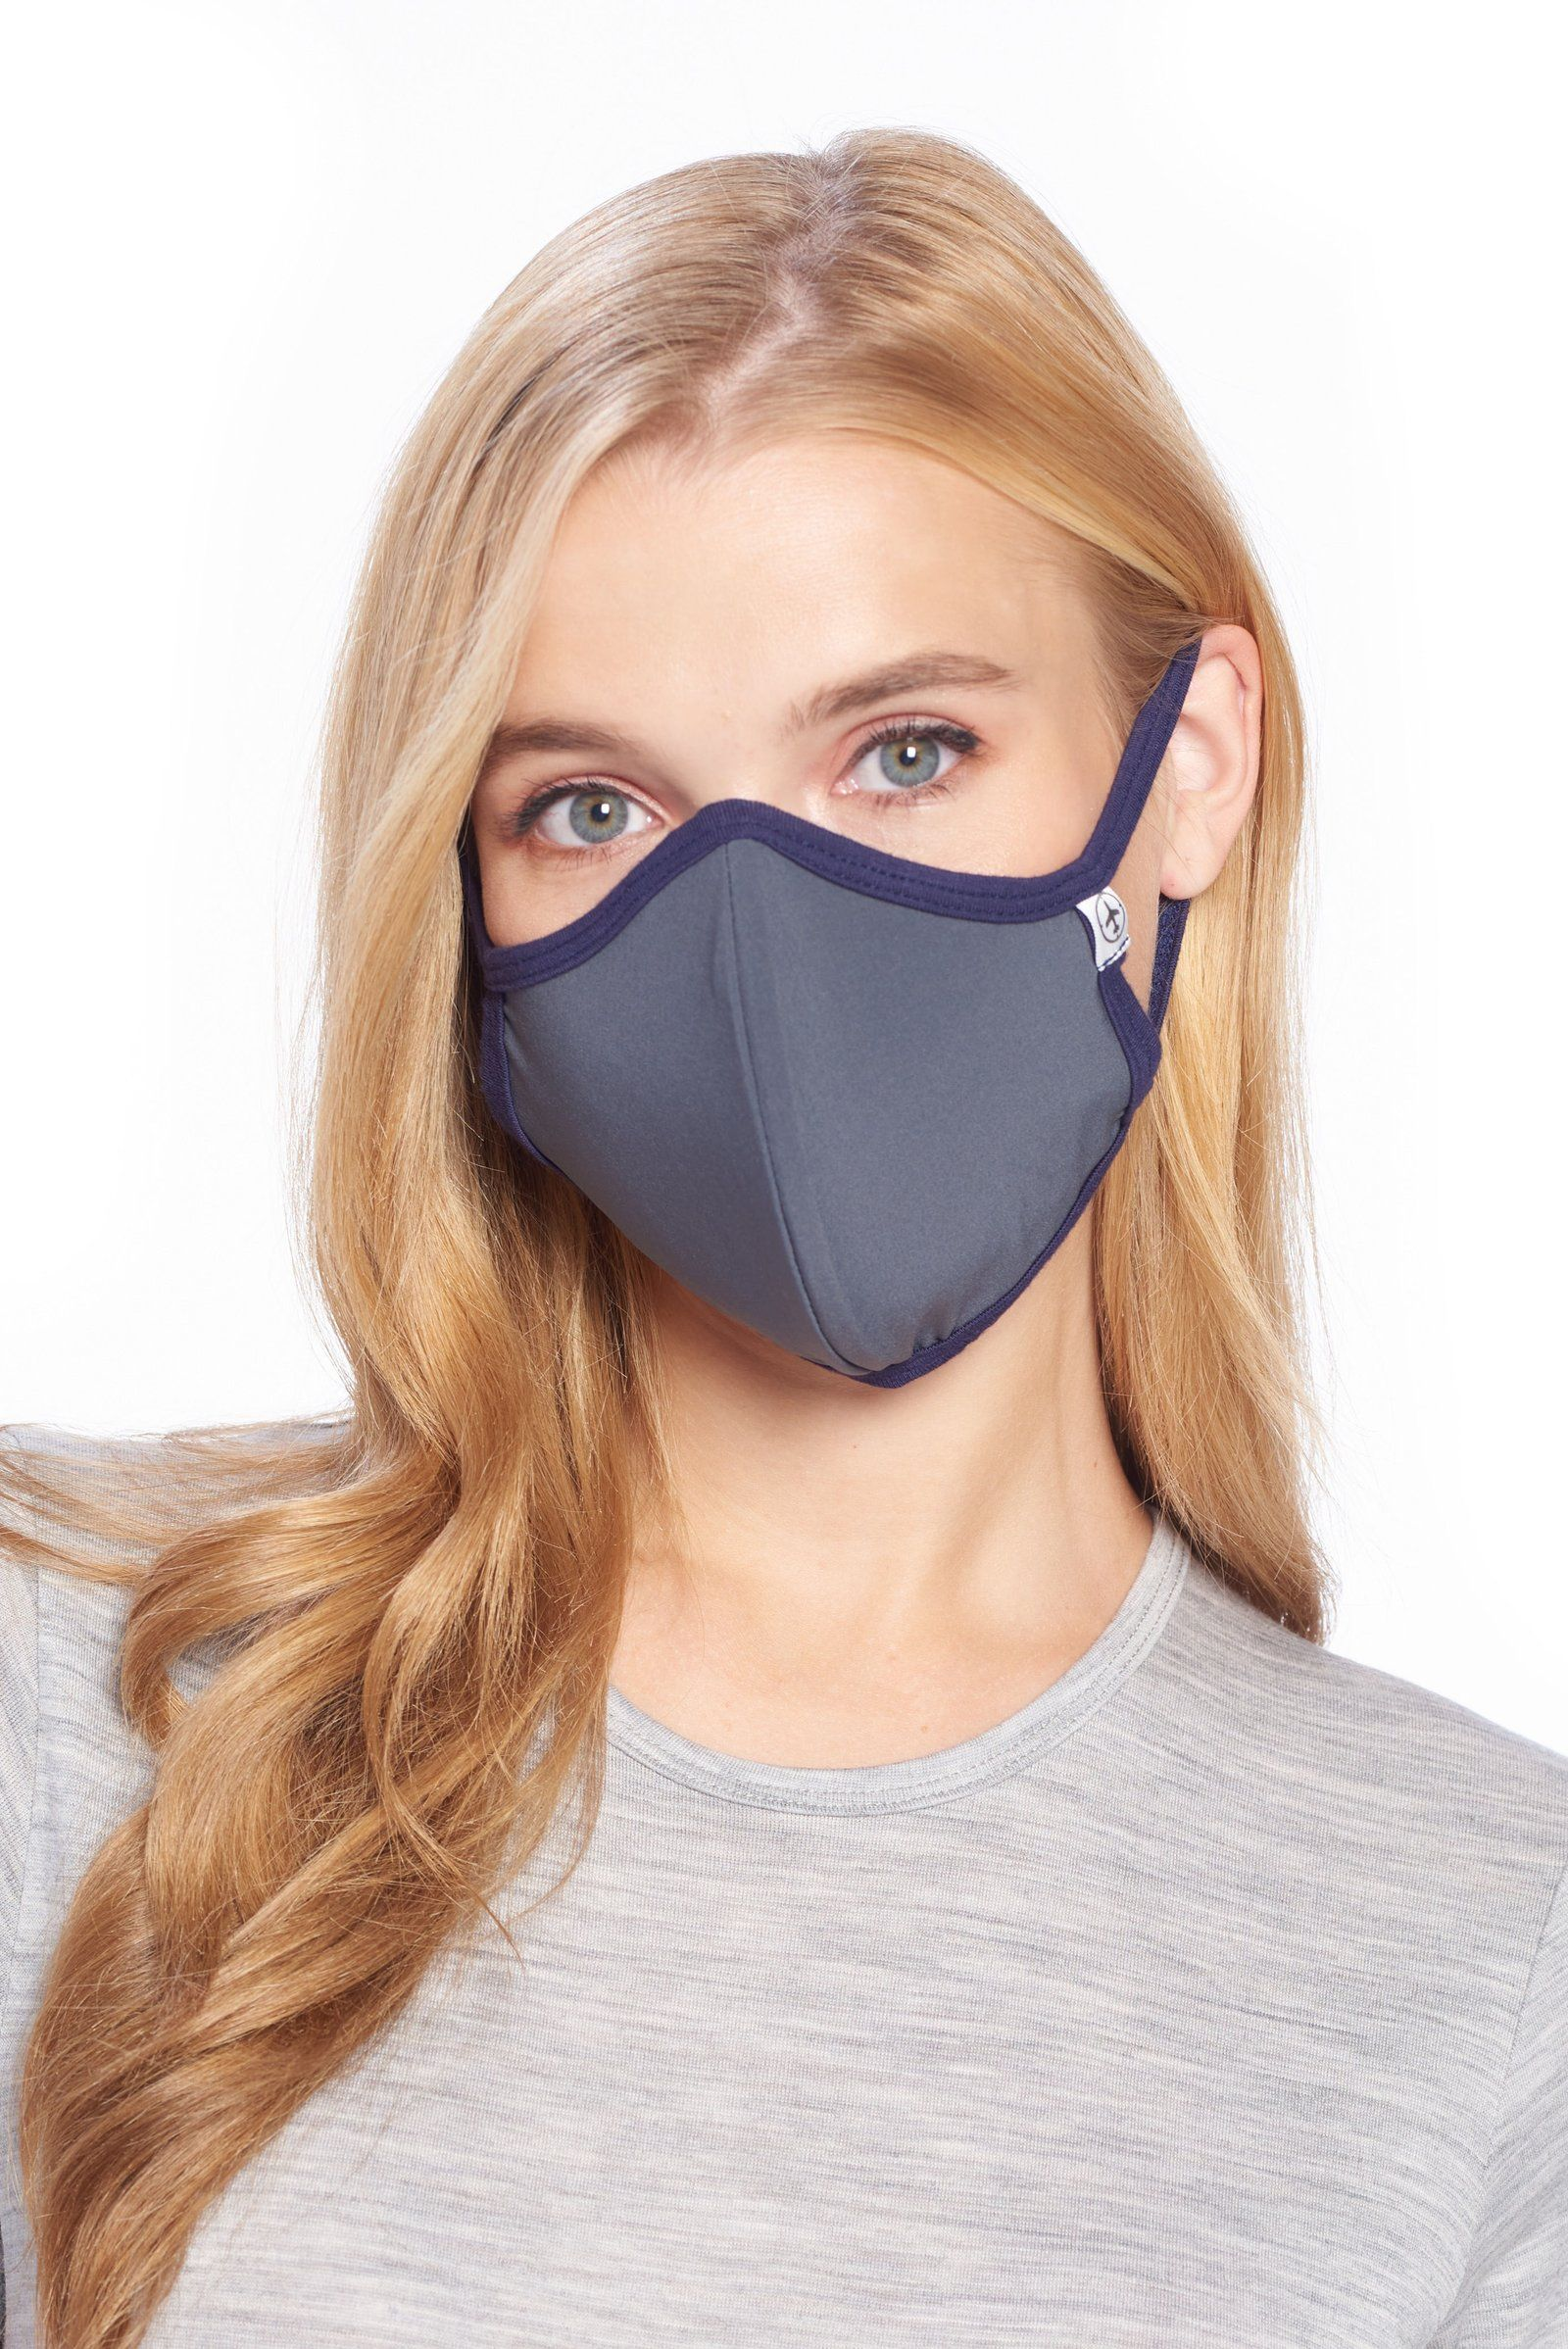 Accessories in 2020 Protective mask, Mask, Black and navy